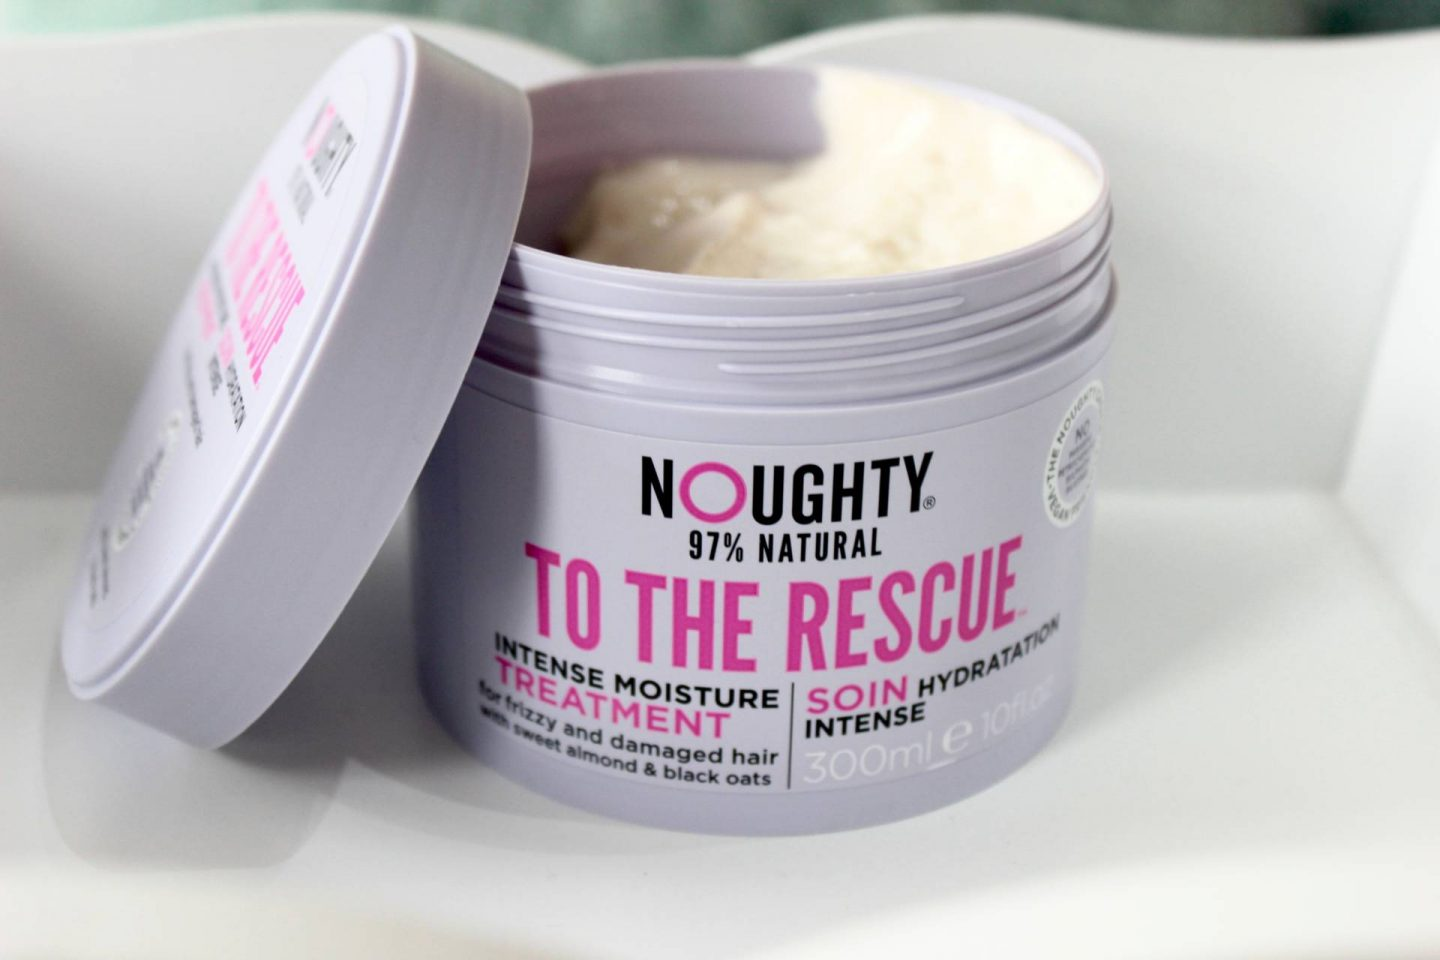 Noughty to the rescue intense moisture treatment